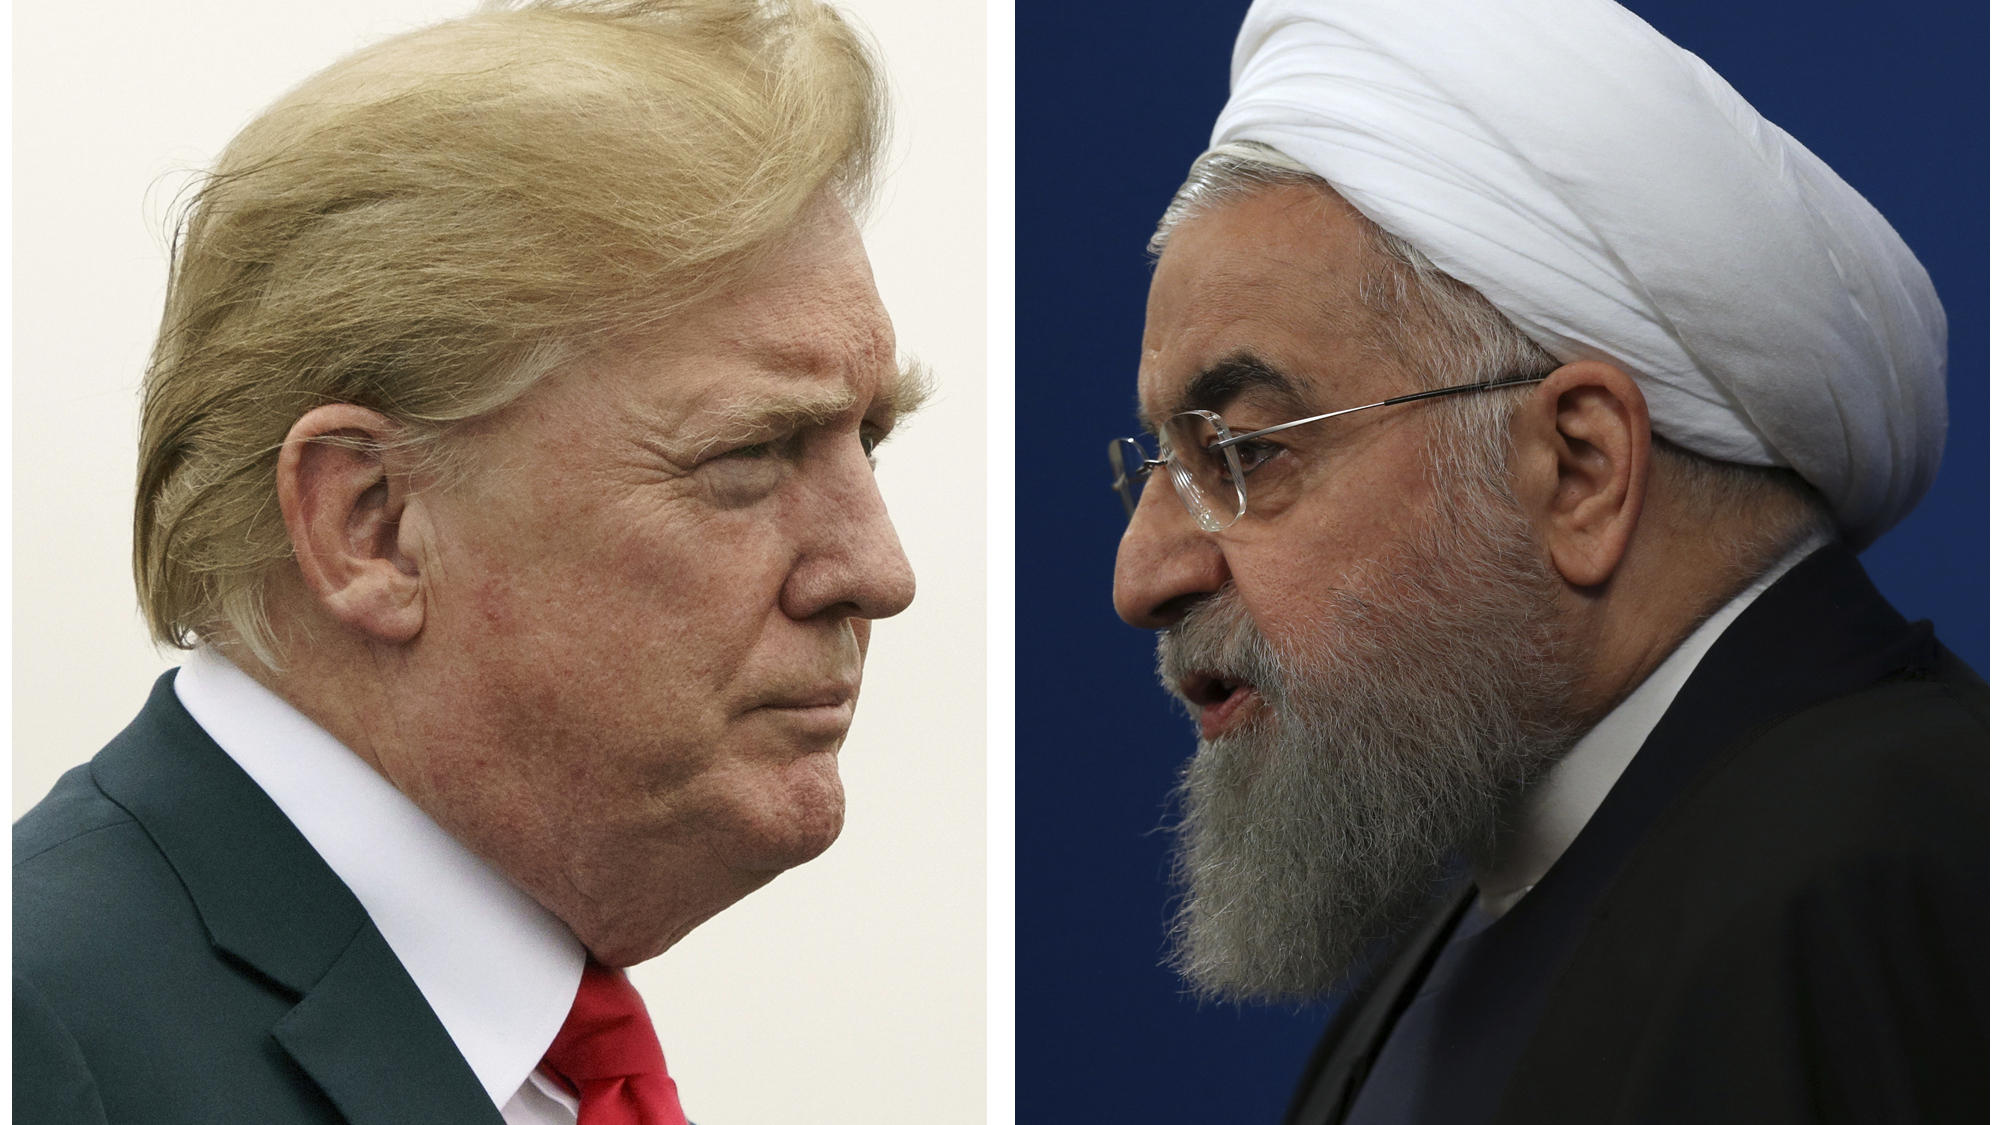 President Trump issued a strongly worded all-caps late-night tweet after Iranian President Hassan Rouhani said that war with Iran would be